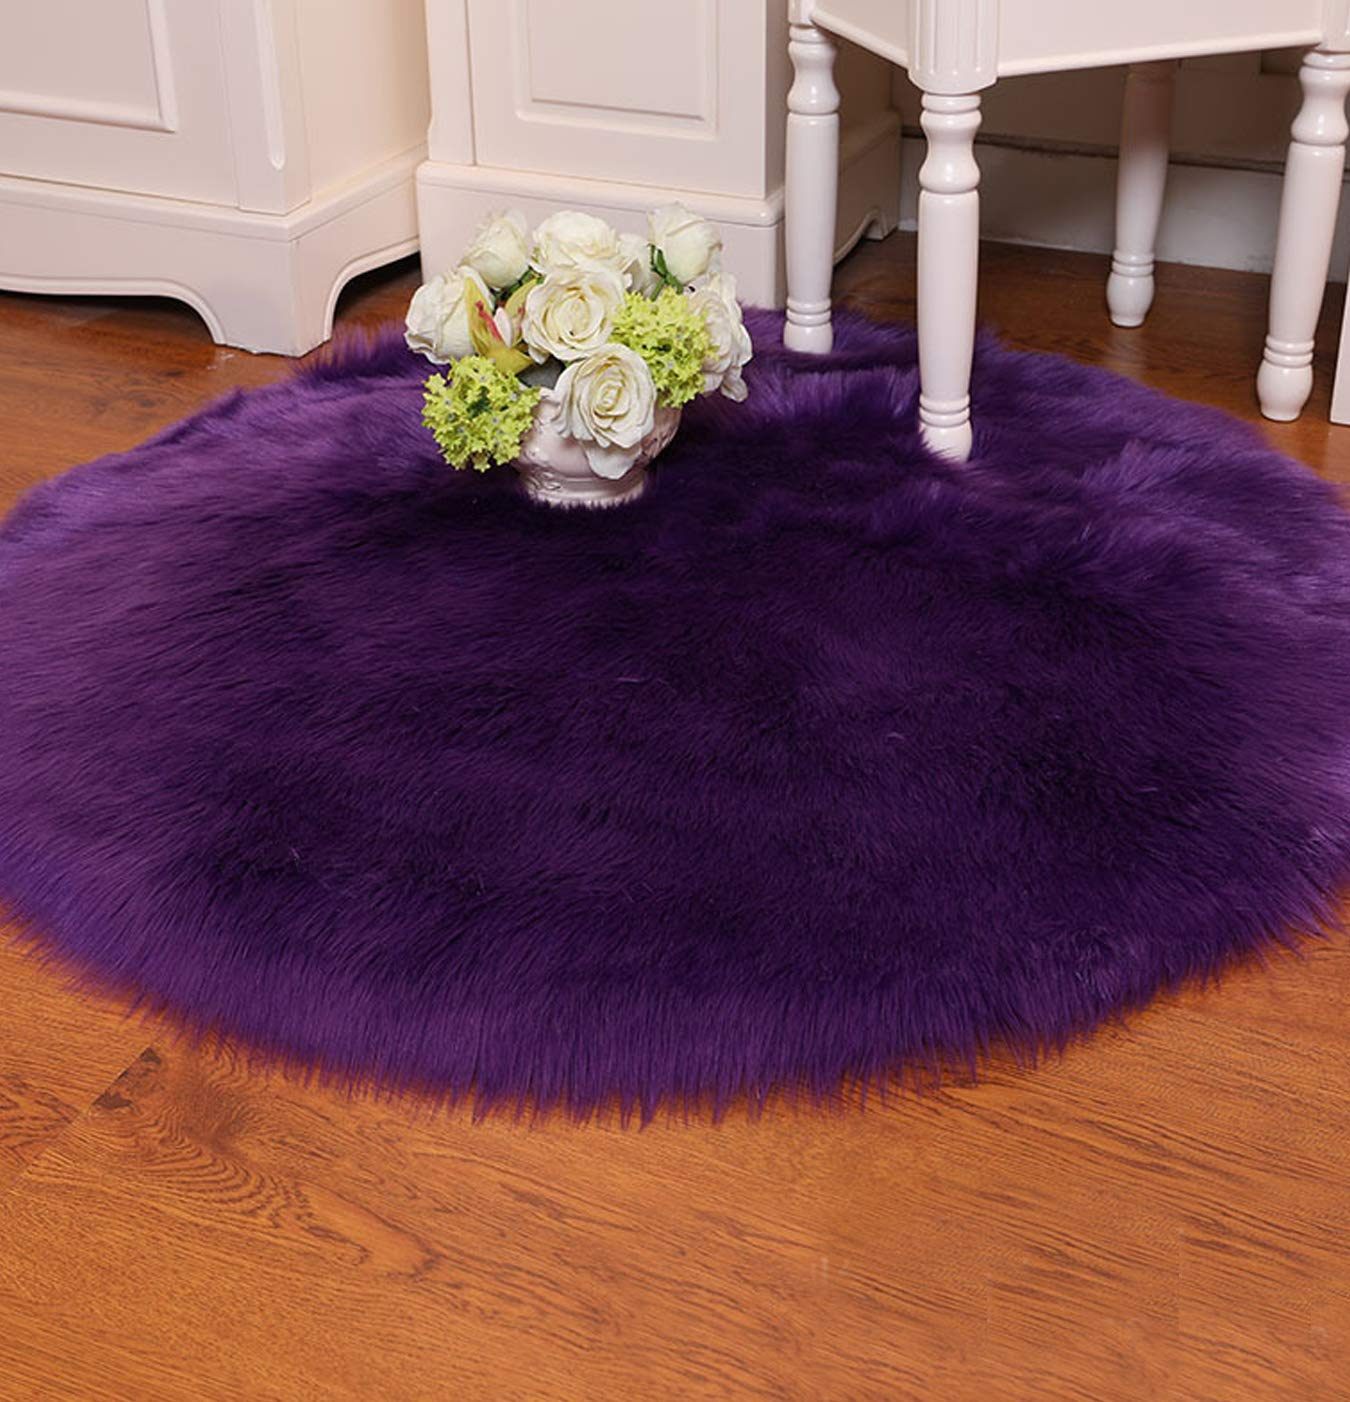 Round Fur Rug Home Decor Faux Fur Sheepskin Rugs Kids Fluffy Carpet for Living Bedroom Sofa Diameter 10 Feet,Purple